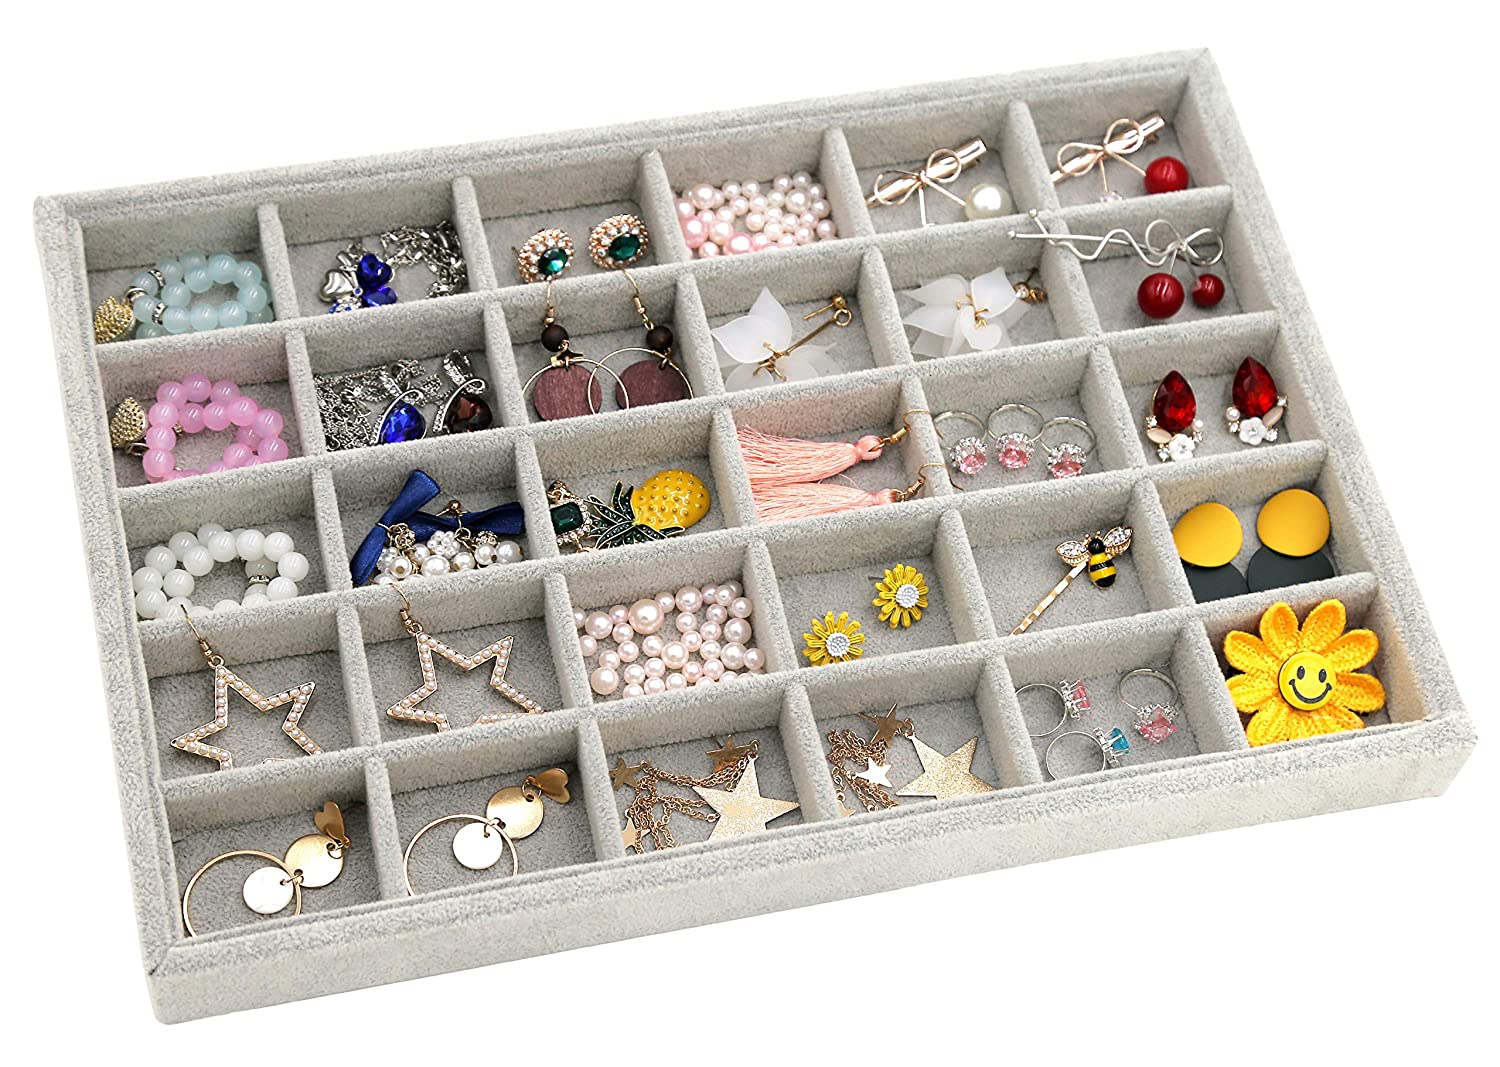 100 Slot Rings Outdoorfly Velvet 100 Slot Ring Display Jewelry Tray Stackable Storage Organizer Rings Holder Showcase